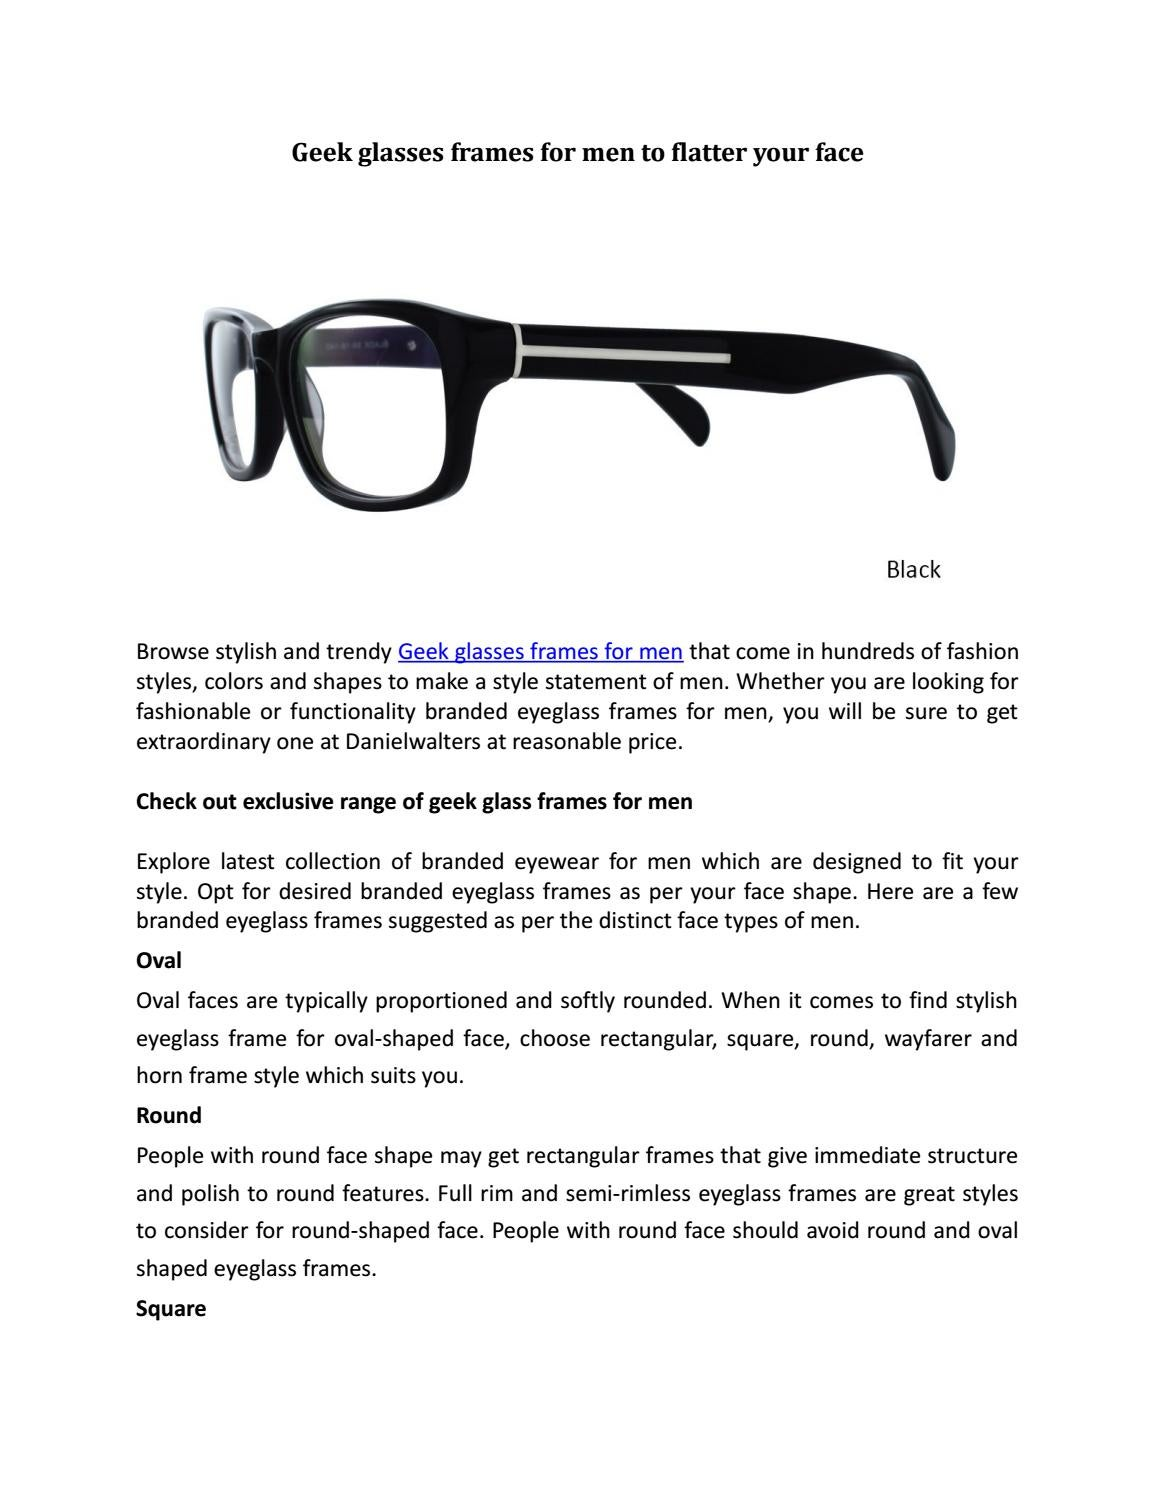 Geek glasses frames for men to flatter your face by Daniel Walters ...